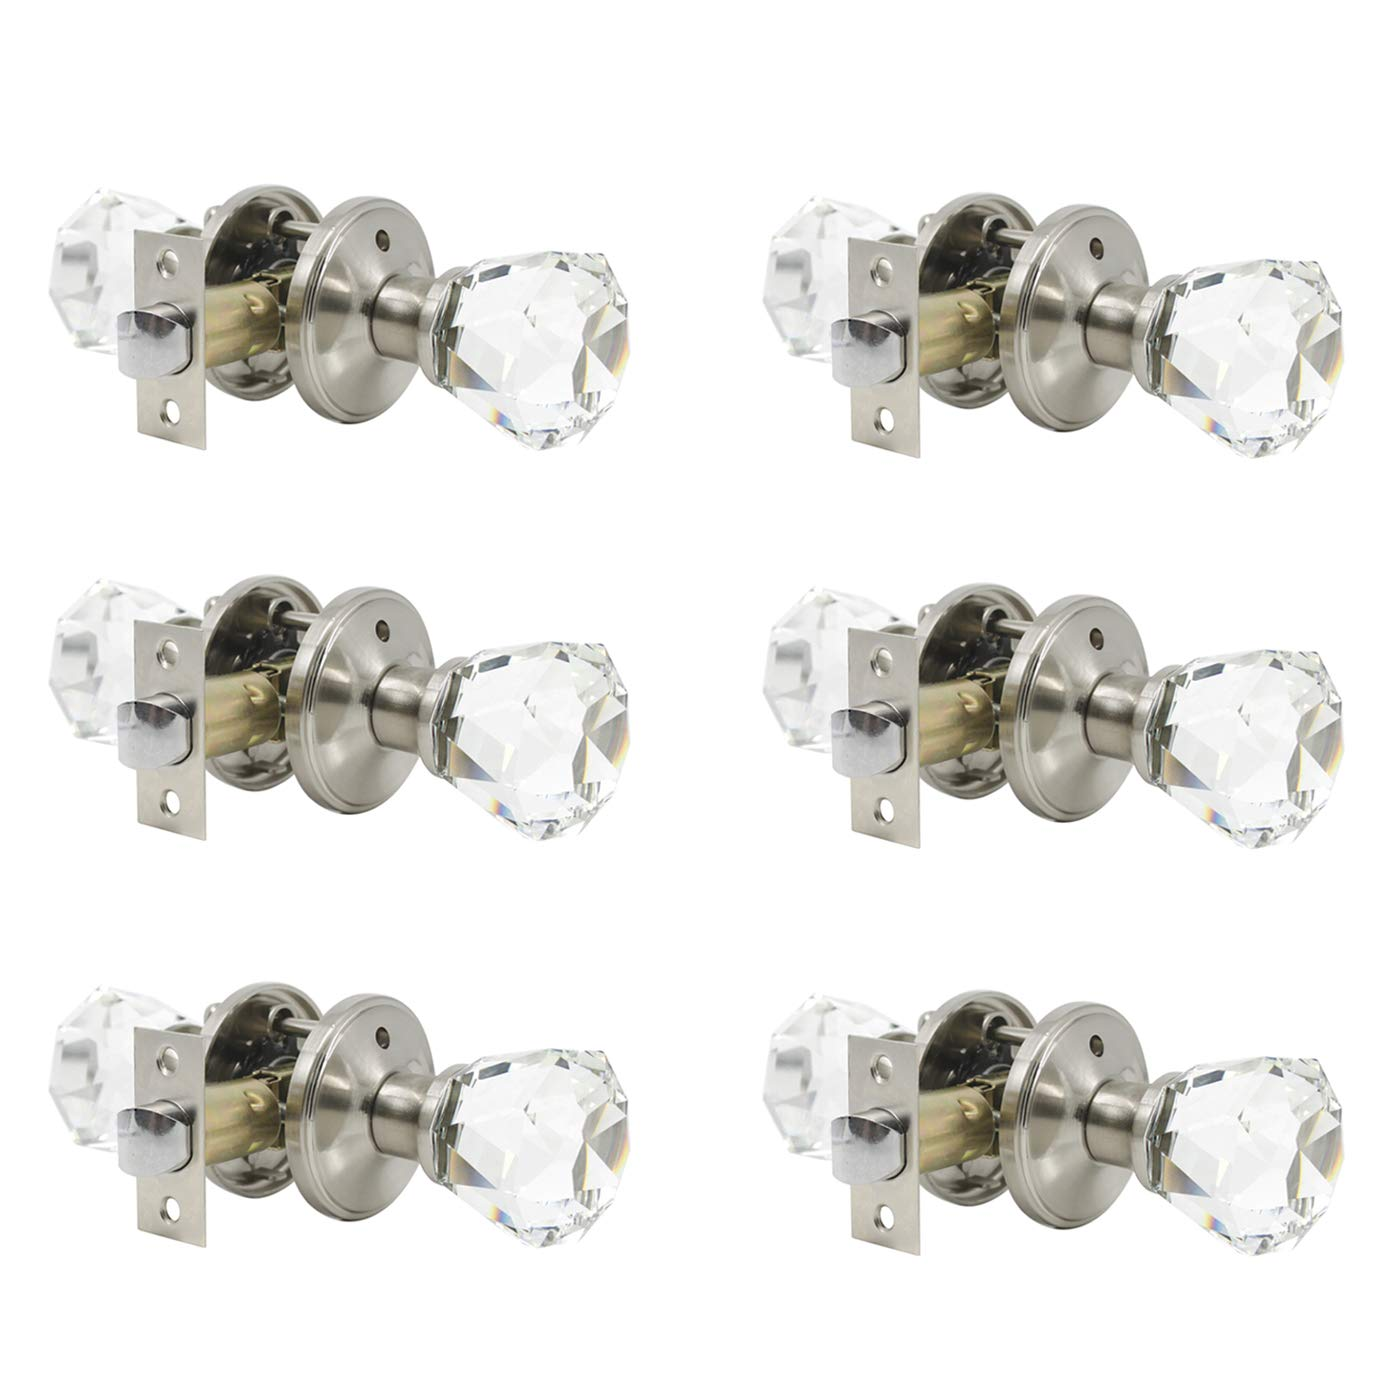 6 Pack Clear Crystal Door Knobs, Heavy Duty Glass Privacy Door Handles for Interior Doors, Bedroom Bathroom Door Knob with Modern Design, Satin Nickel Finish